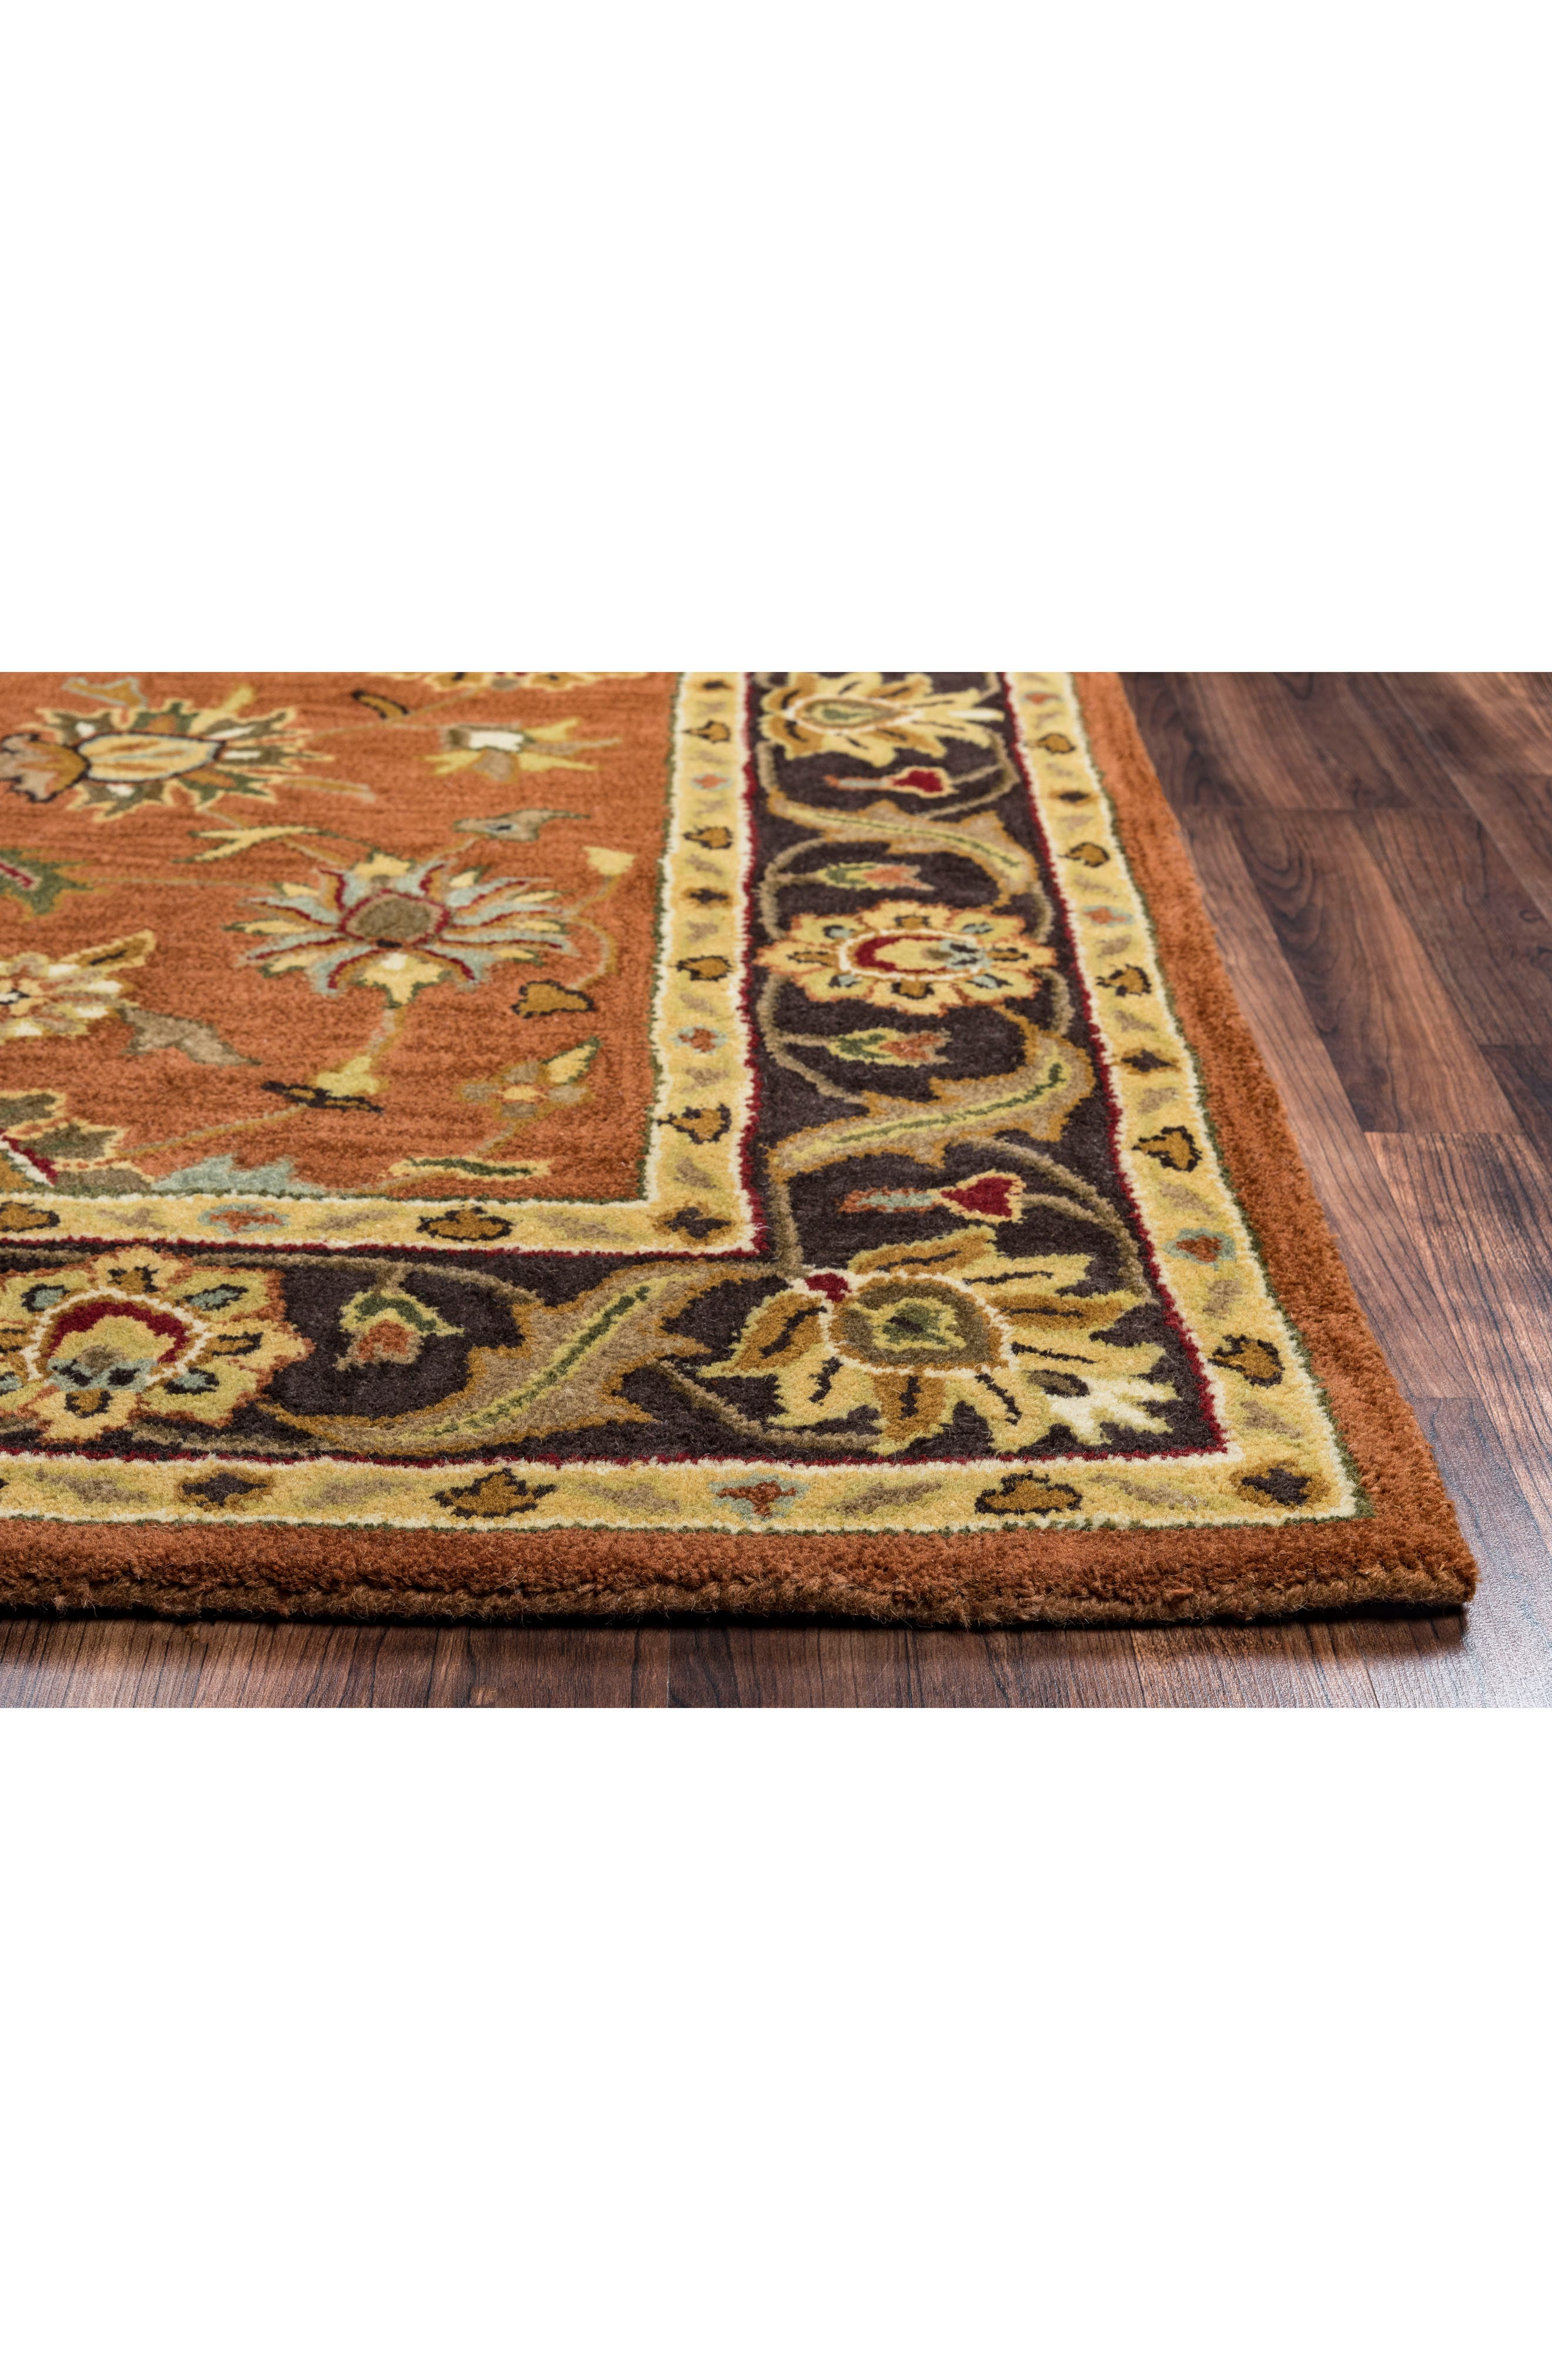 Amalia Hand Tufted Wool Area Rug,                             Alternate thumbnail 2, color,                             220